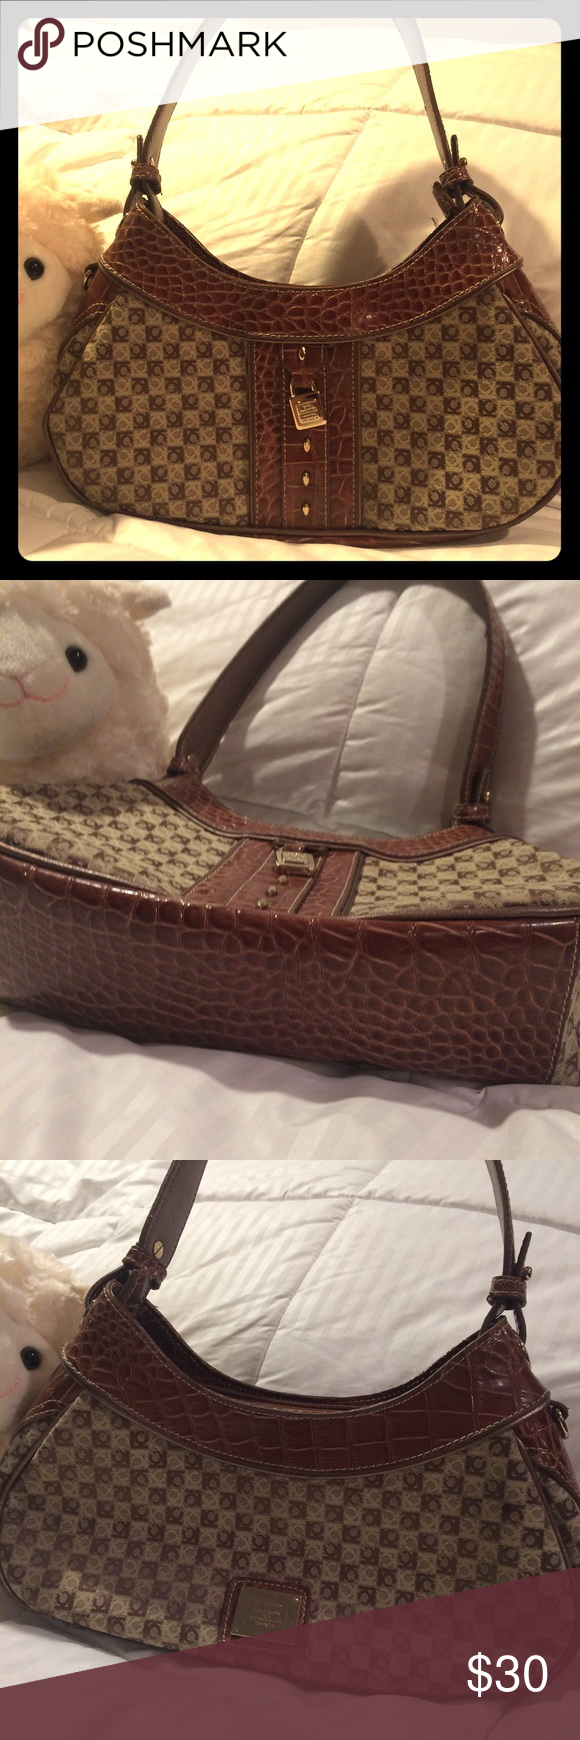 """Liz Claiborne locked monogrammed Bag never used This is such a nice bag and it somehow hid away in my closet...therefore it's never been used! Monogrammed canvas, polished brass hardware & 3 separate pocket sections. Very nice small bag!! 12"""" long x 6"""" wide and the strap drop is 10"""" Liz Claiborne Bags Mini Bags"""